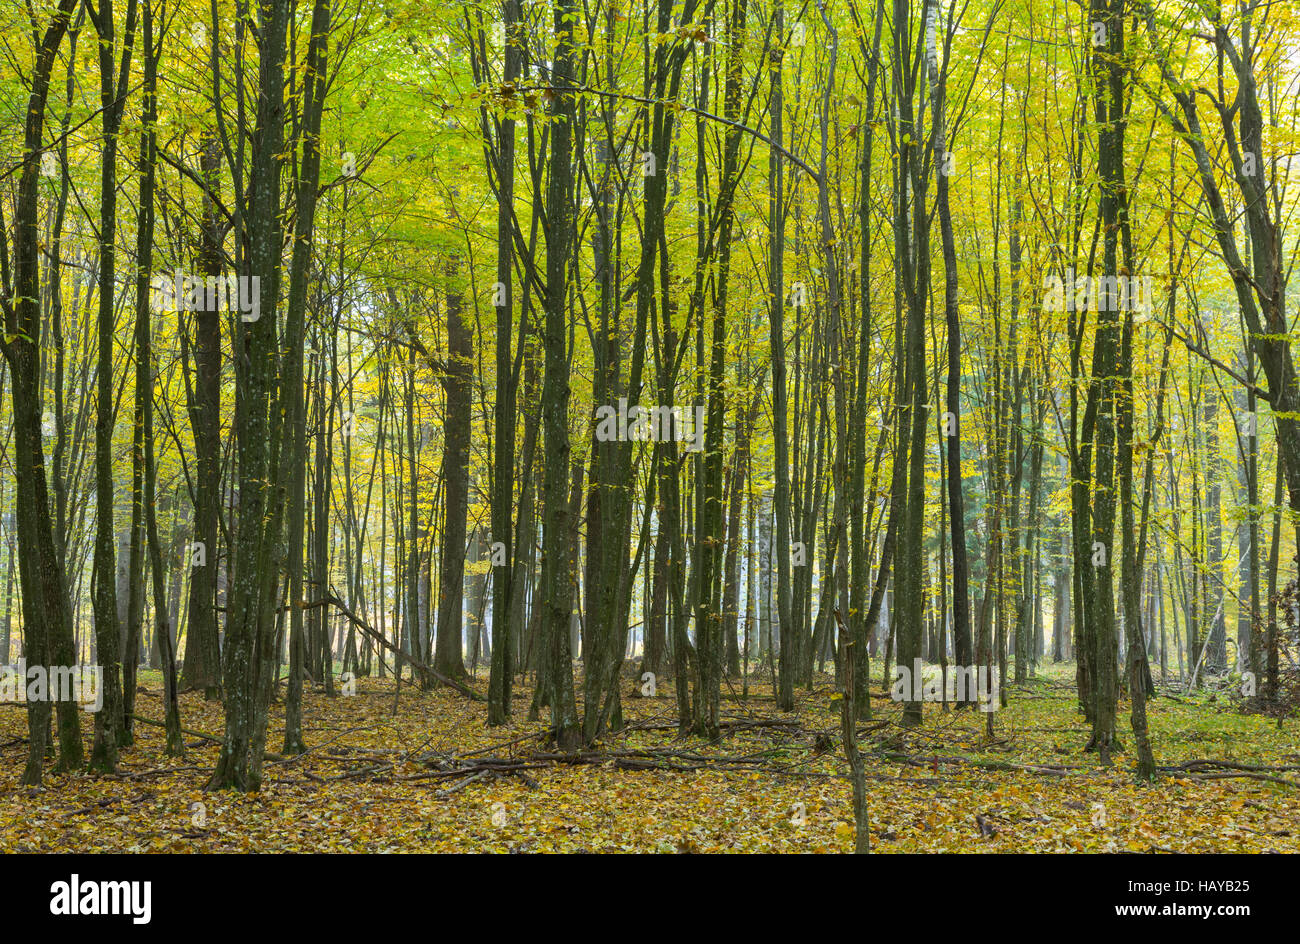 Hornbeam trees in autumnal landscape of primeval deciduous stand, Bialowieza Forest, Poland, Europe Stock Photo